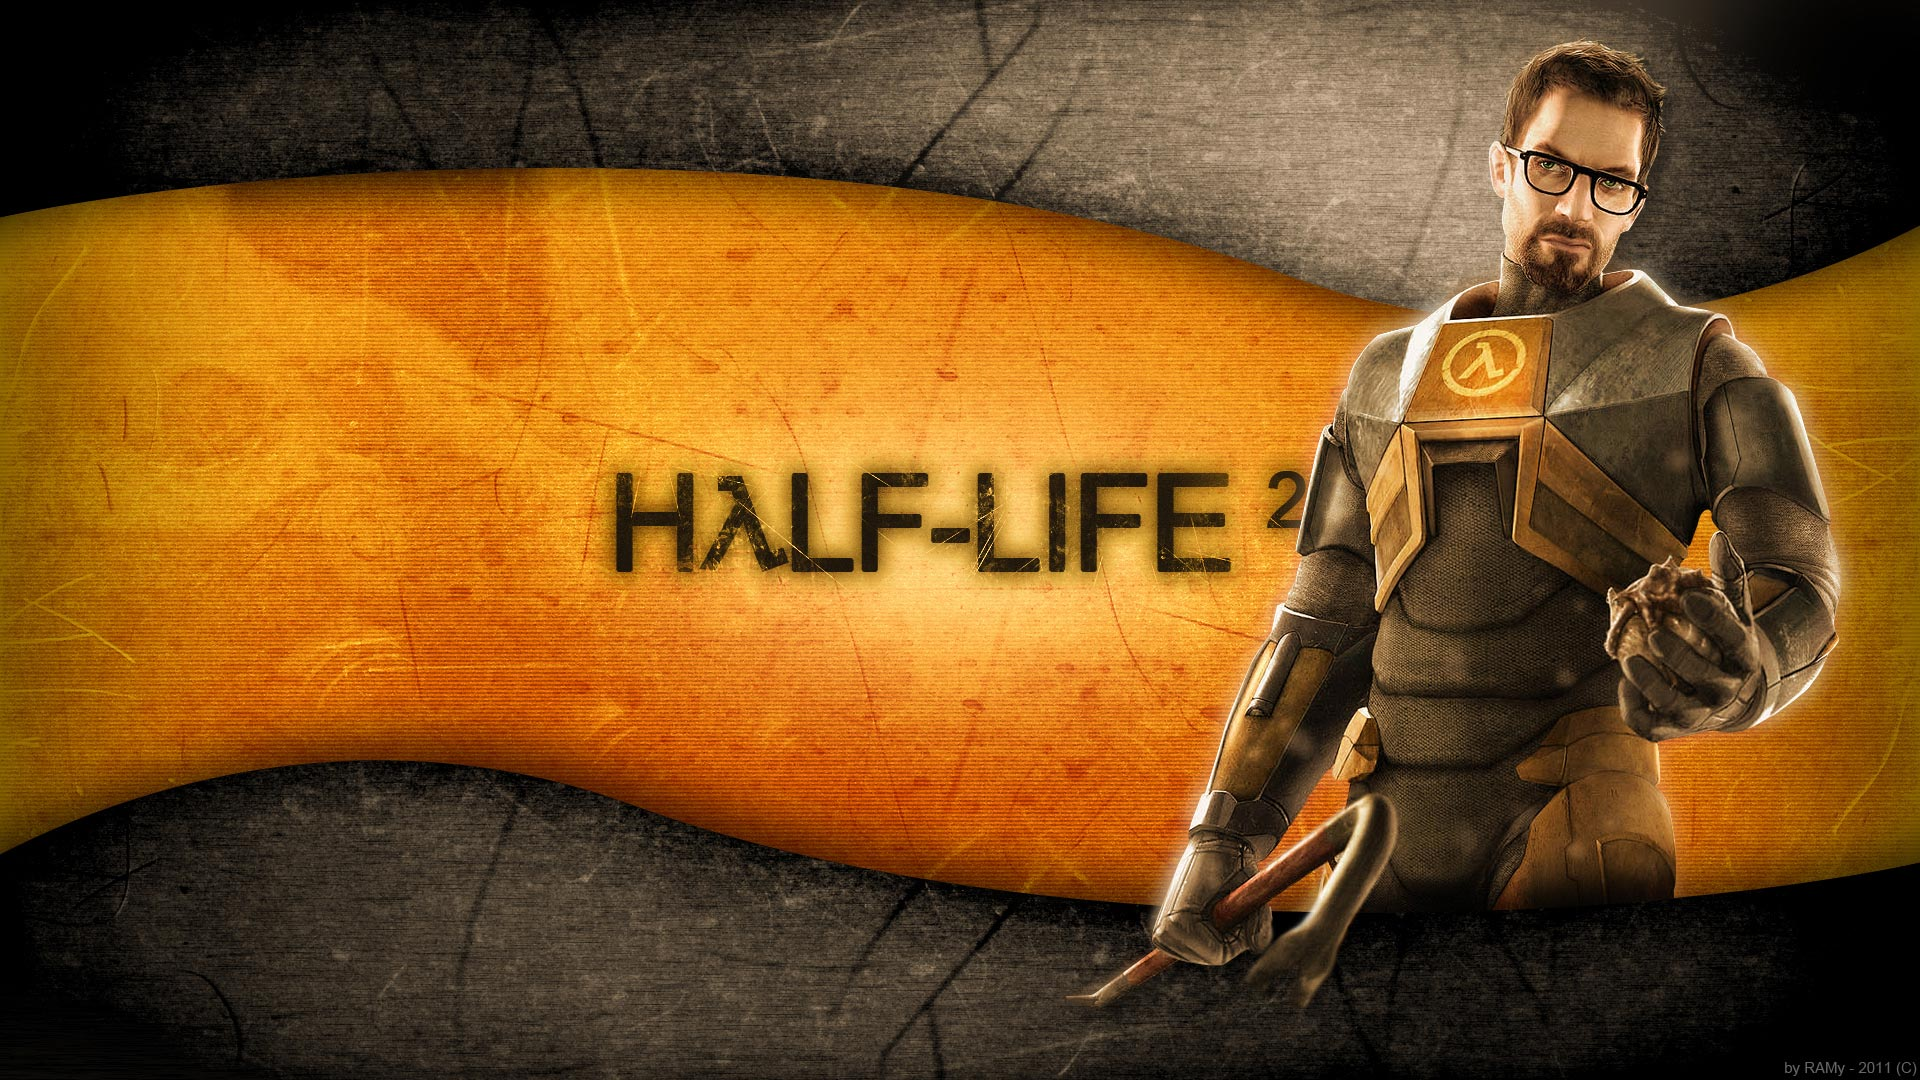 half-life 2 full hd wallpaper and background image | 1920x1080 | id